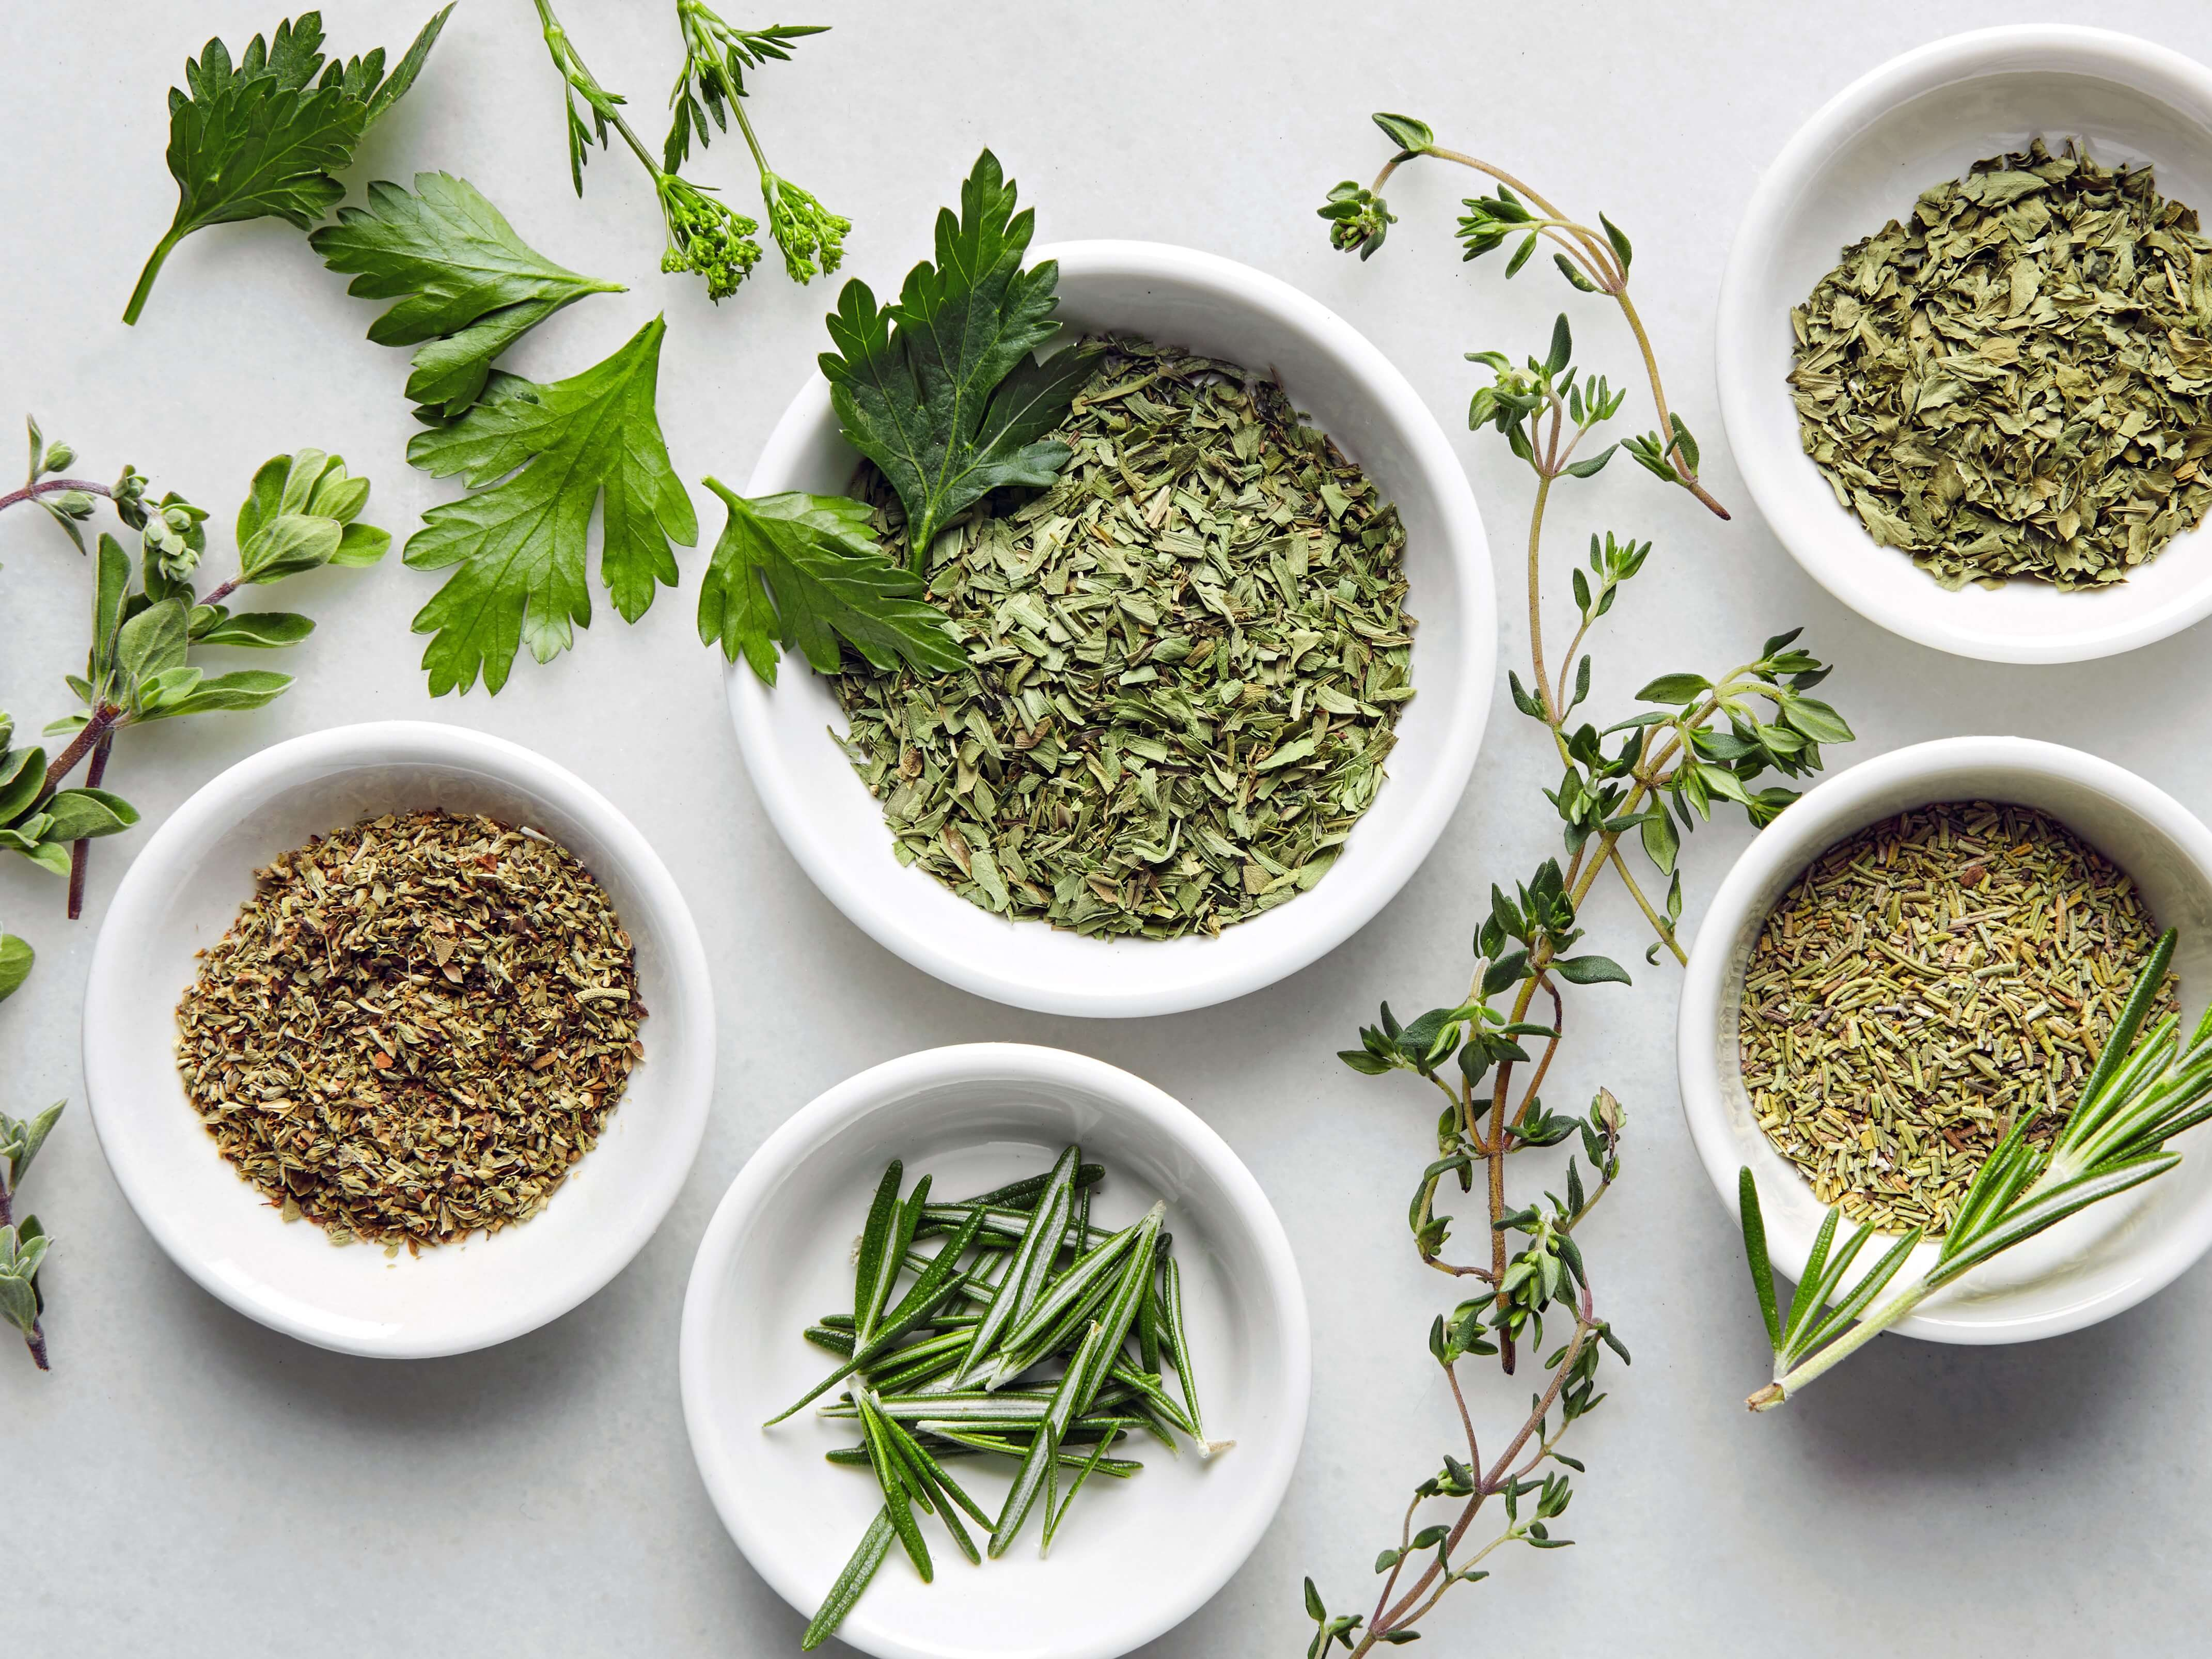 Dry herbs tend to be as healthy as fresh herbs. Image Courtesy of Epicurious.